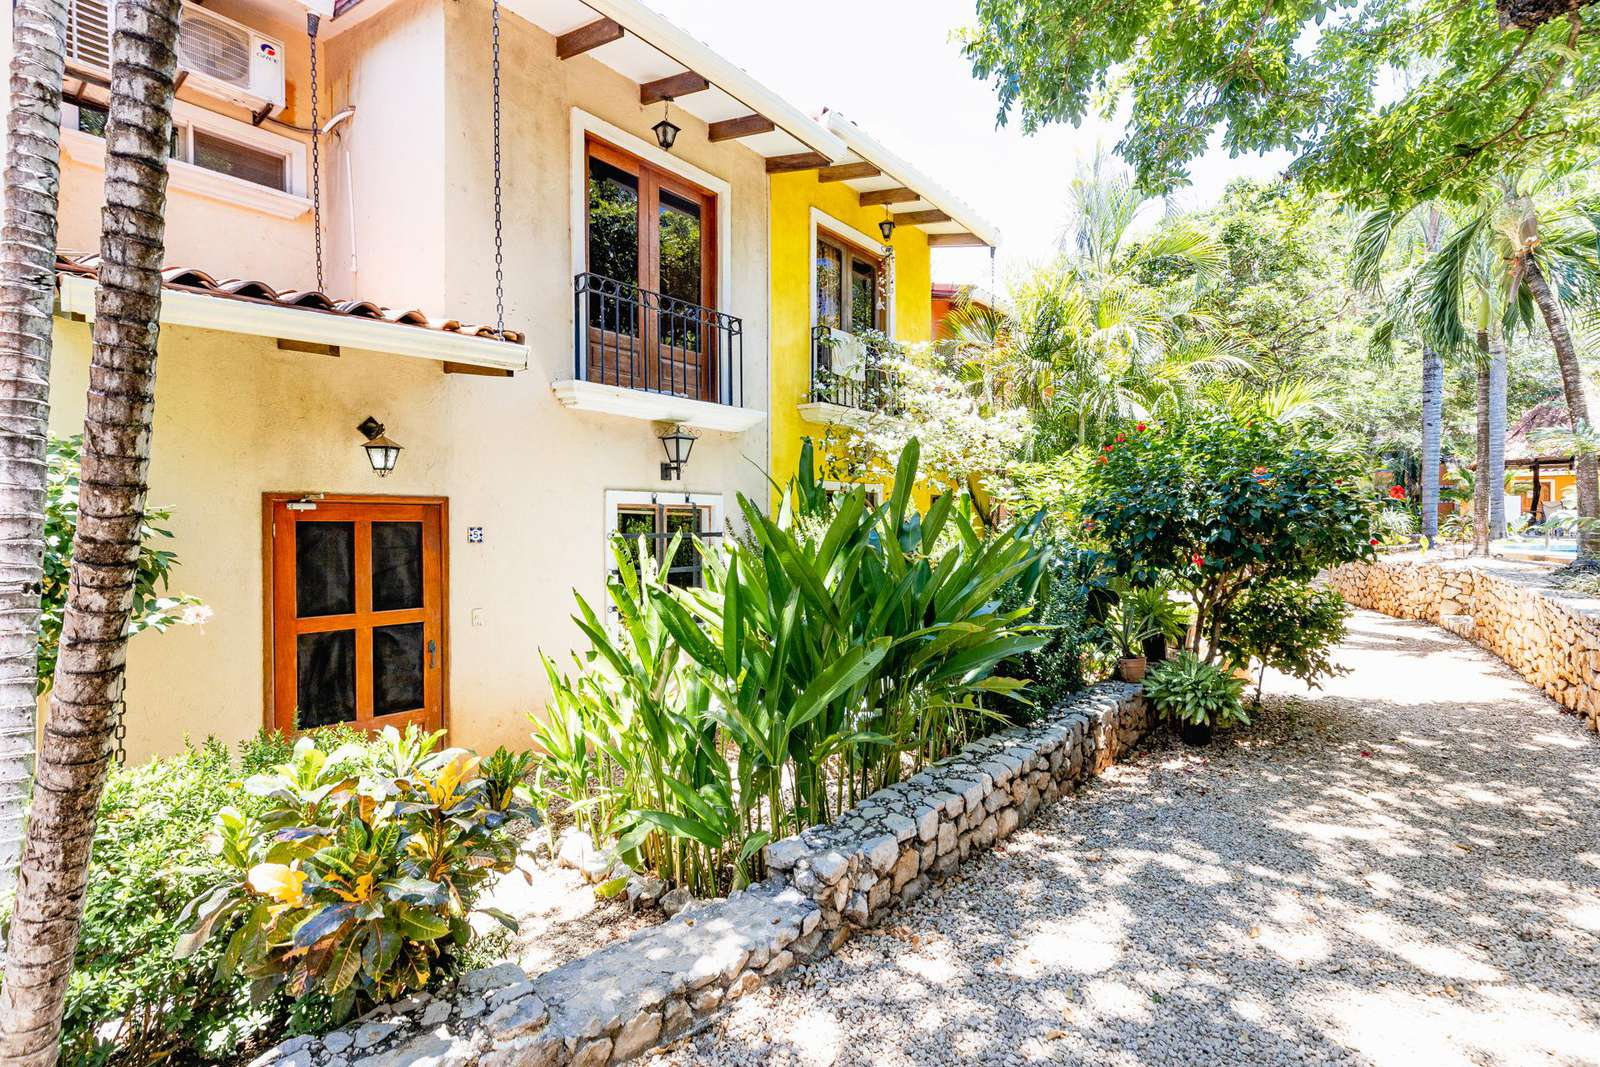 Pueblo del mar #5, a 2 Bedroom, 2 bath town home in Tamarindo